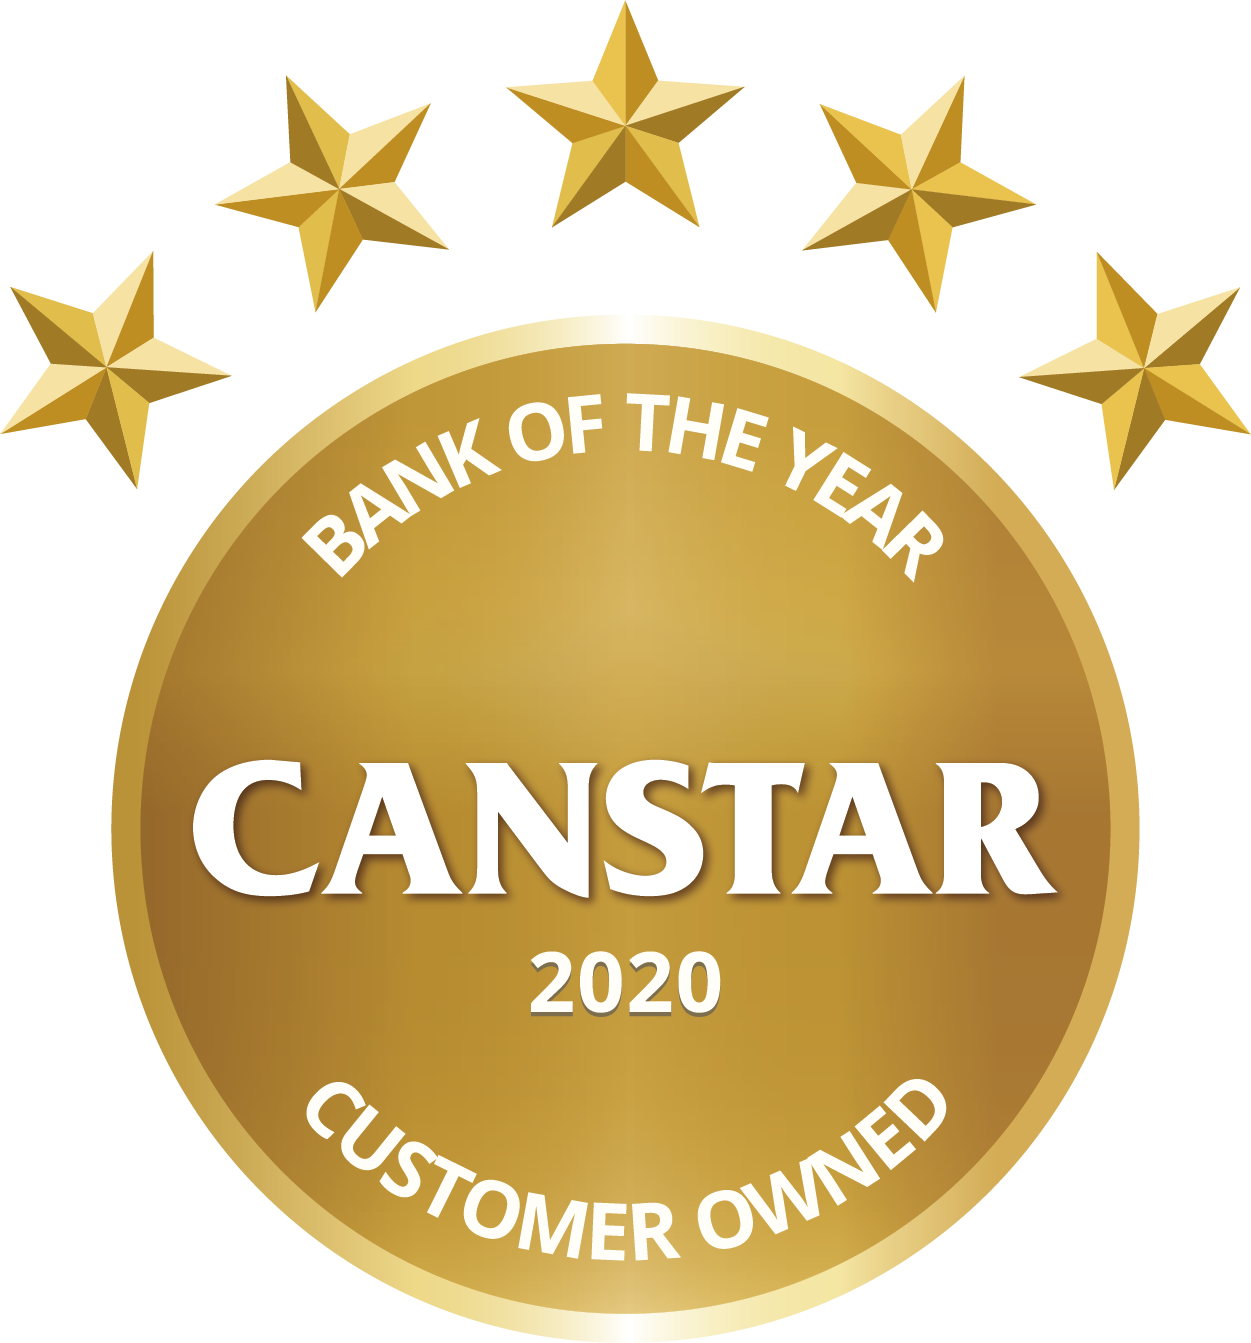 Cantsar Customer Owned Bank of The Year 2020